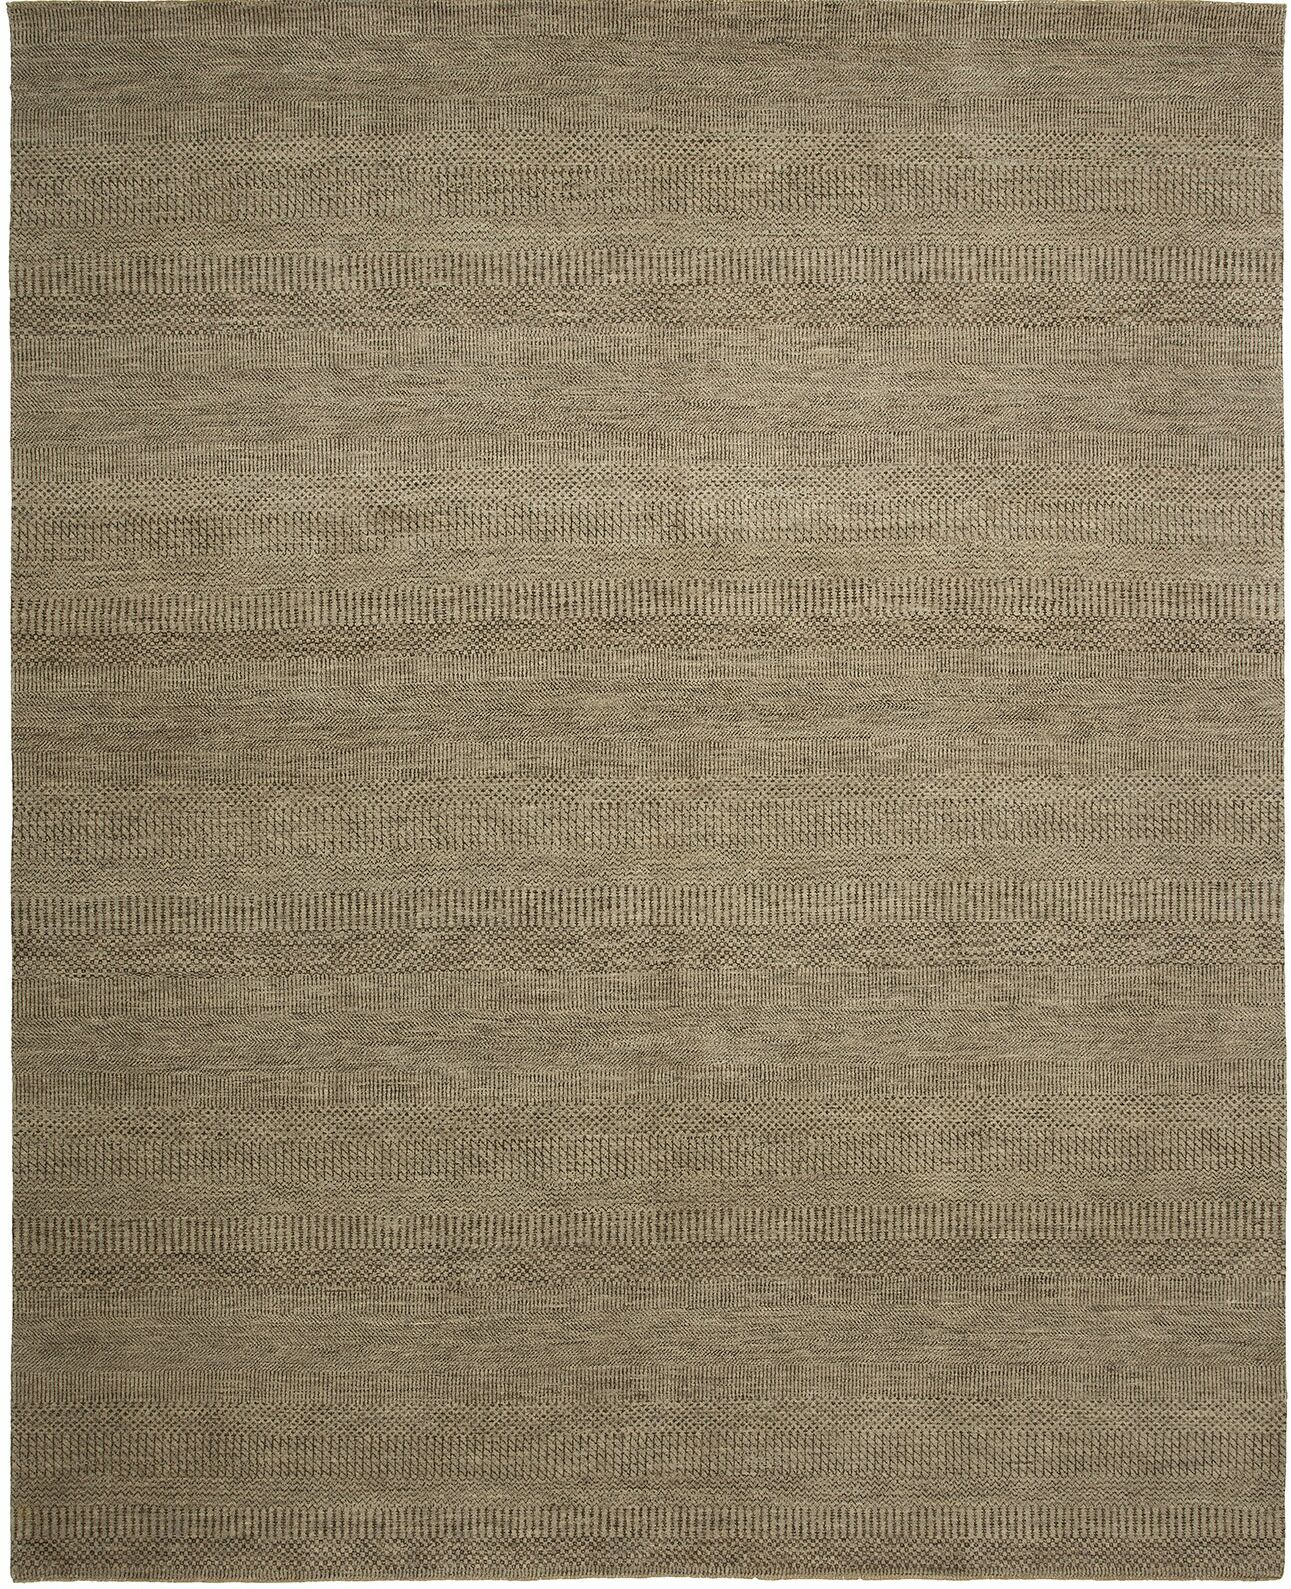 Illusions Hand-Knotted Beige Area Rug Rug Size: Runner 2'6